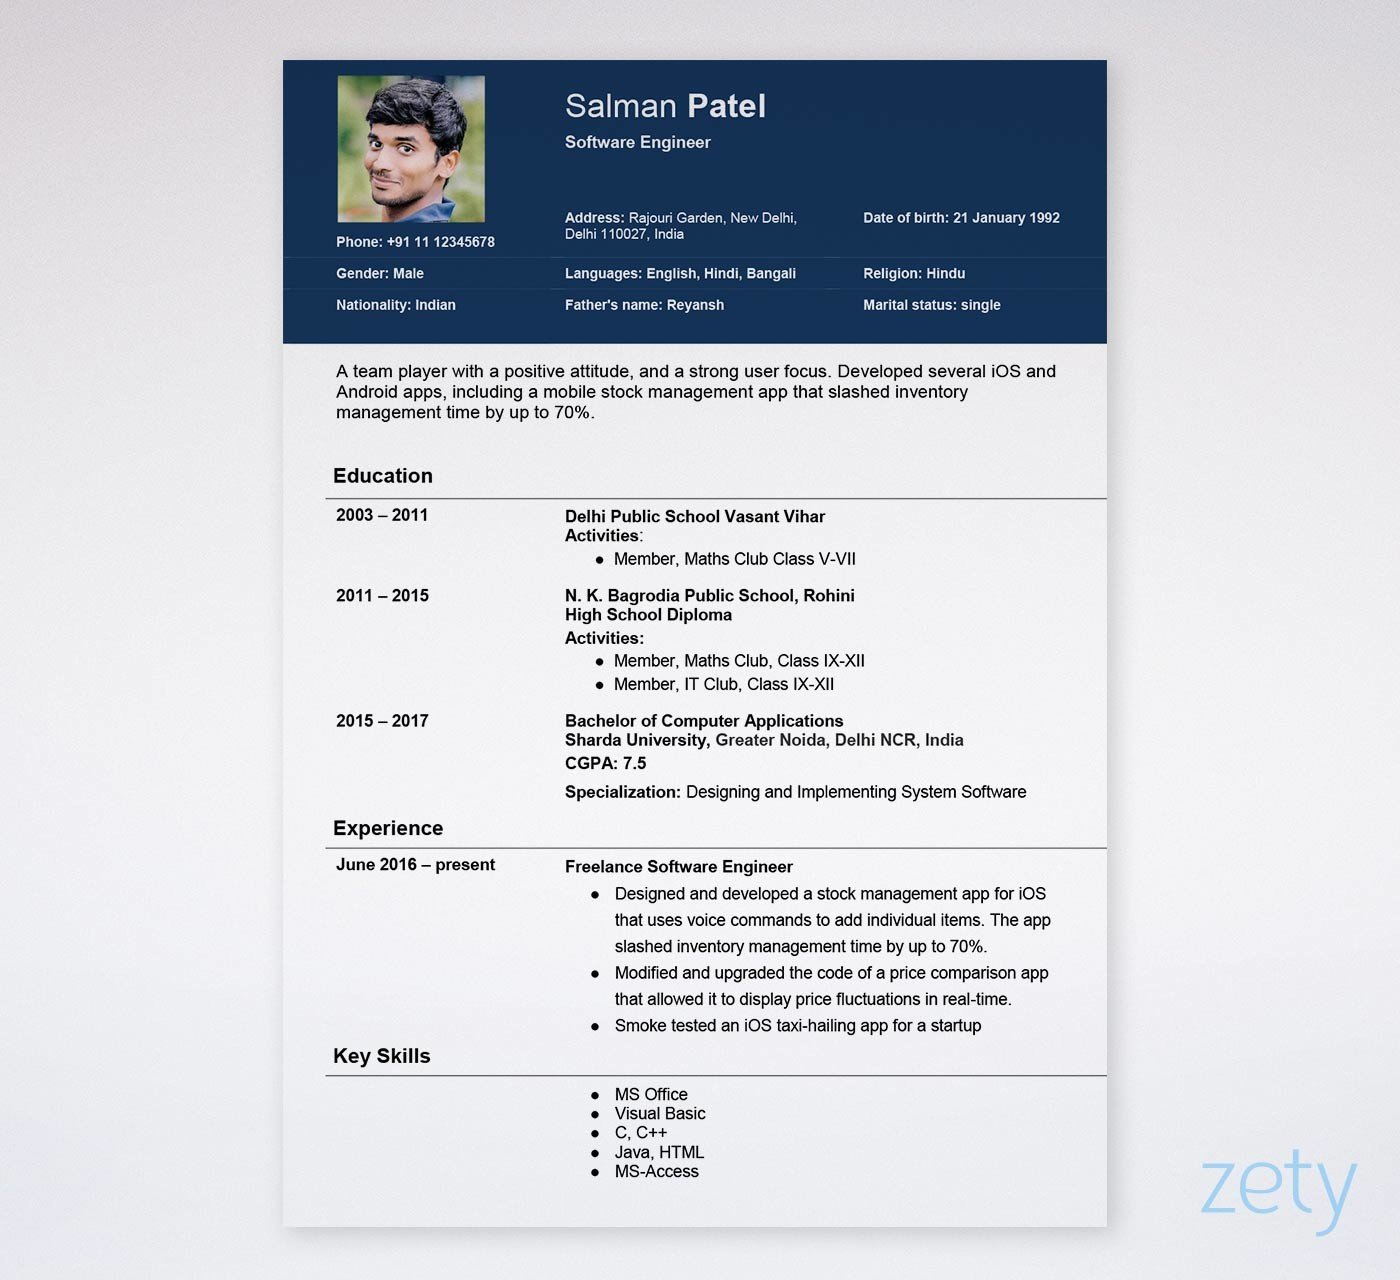 Marriage Resume Format For Girl Pdf Biodata Format Free Templates For A Job And Marriage Free